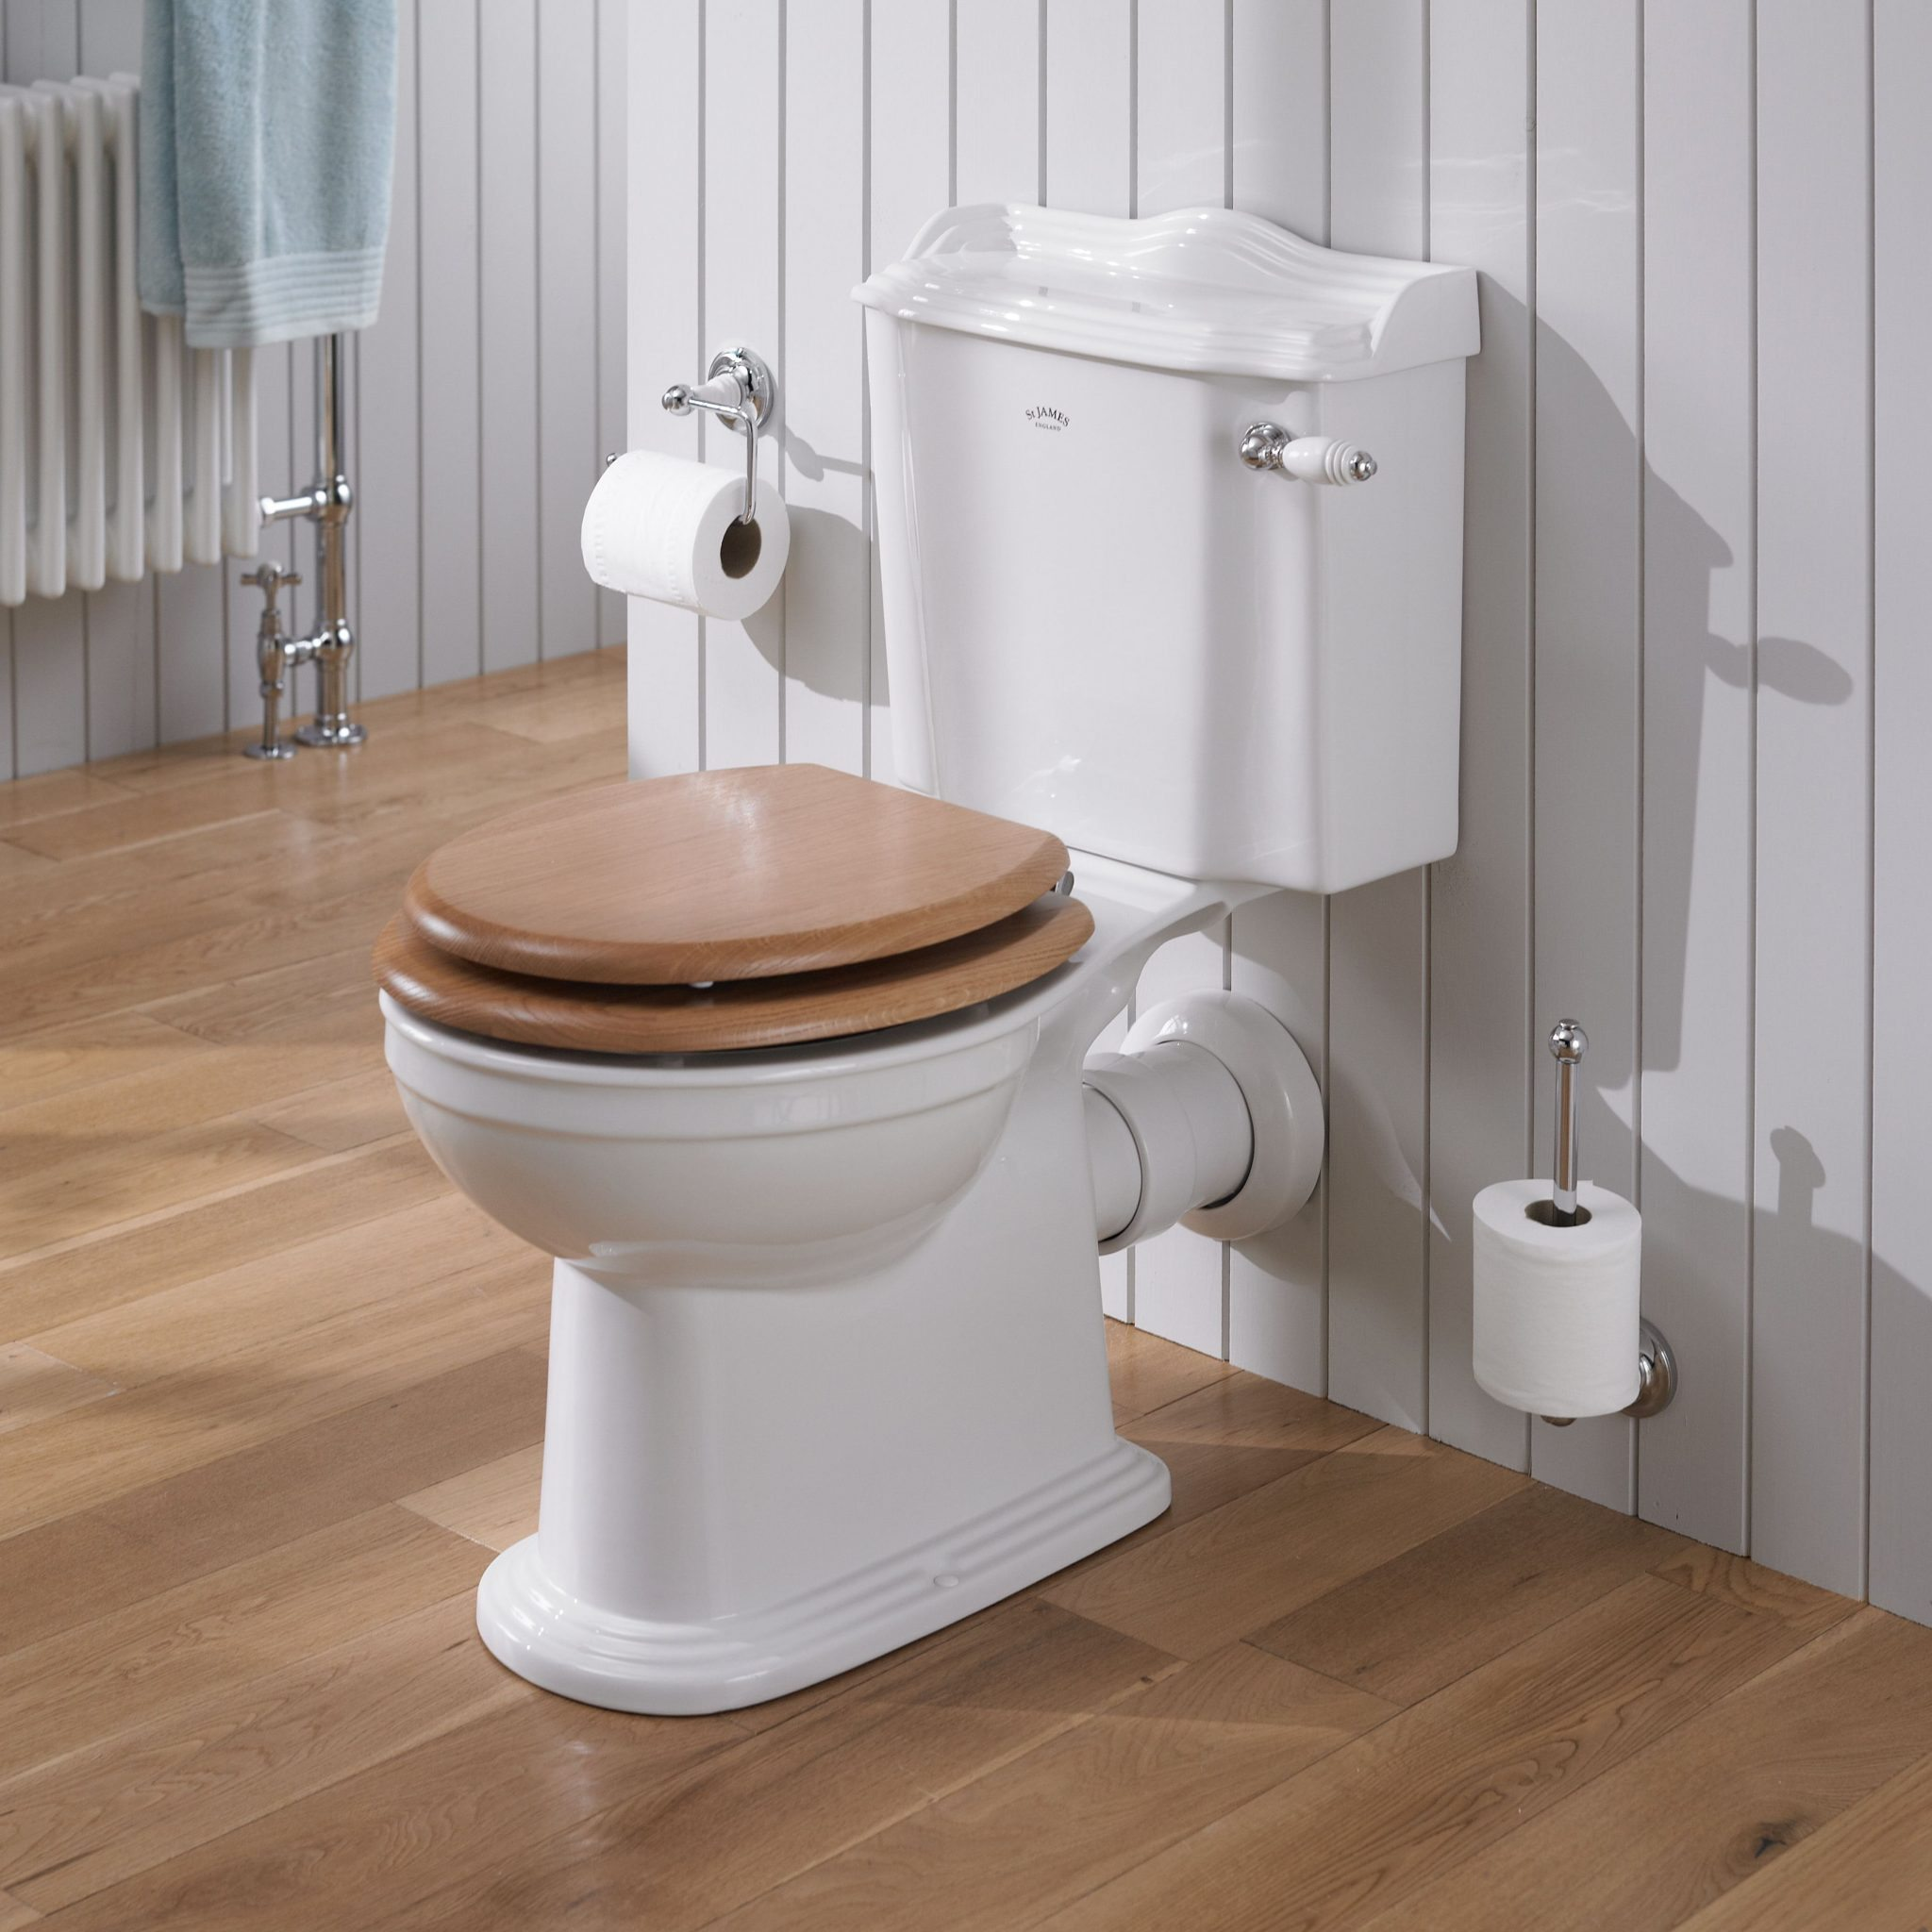 siphonic vs washdown toilet which is better orton baths. Black Bedroom Furniture Sets. Home Design Ideas